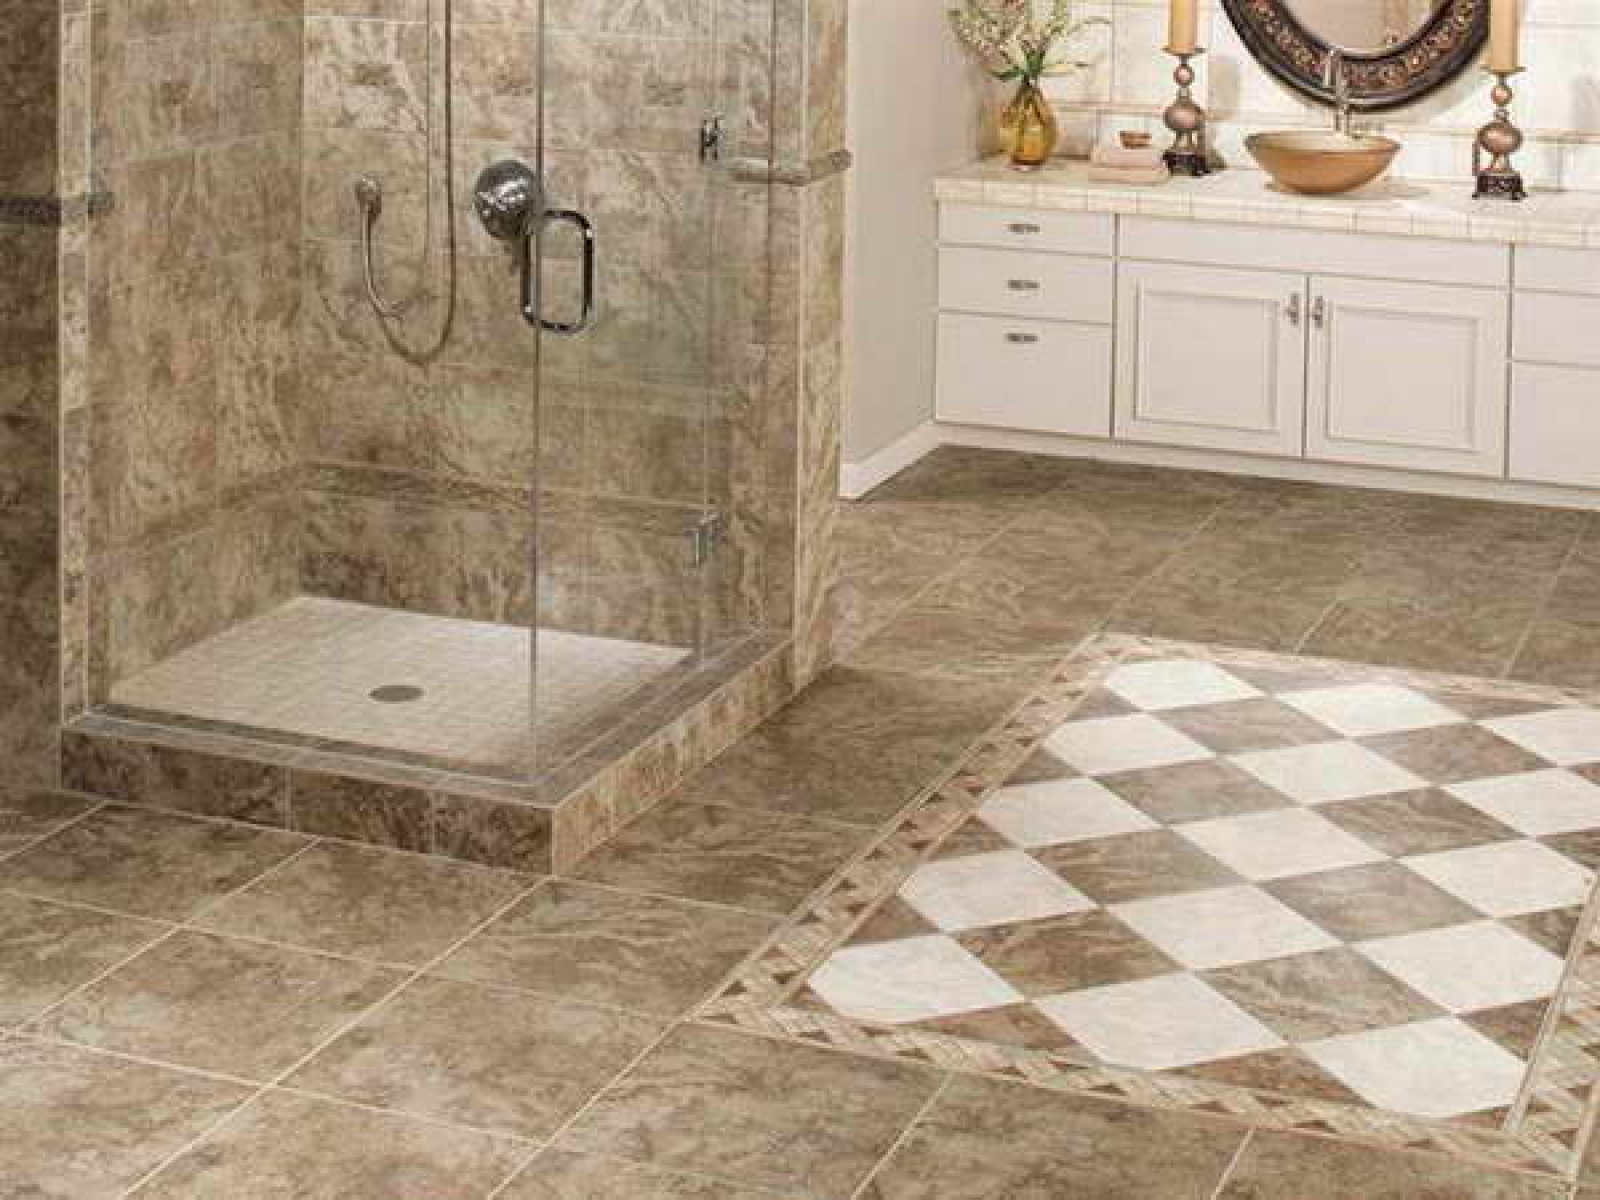 30 beautiful ideas and pictures decorative bathroom tile accents 1600x1200 pictures of bathroom tile floors with decorative dailygadgetfo Gallery